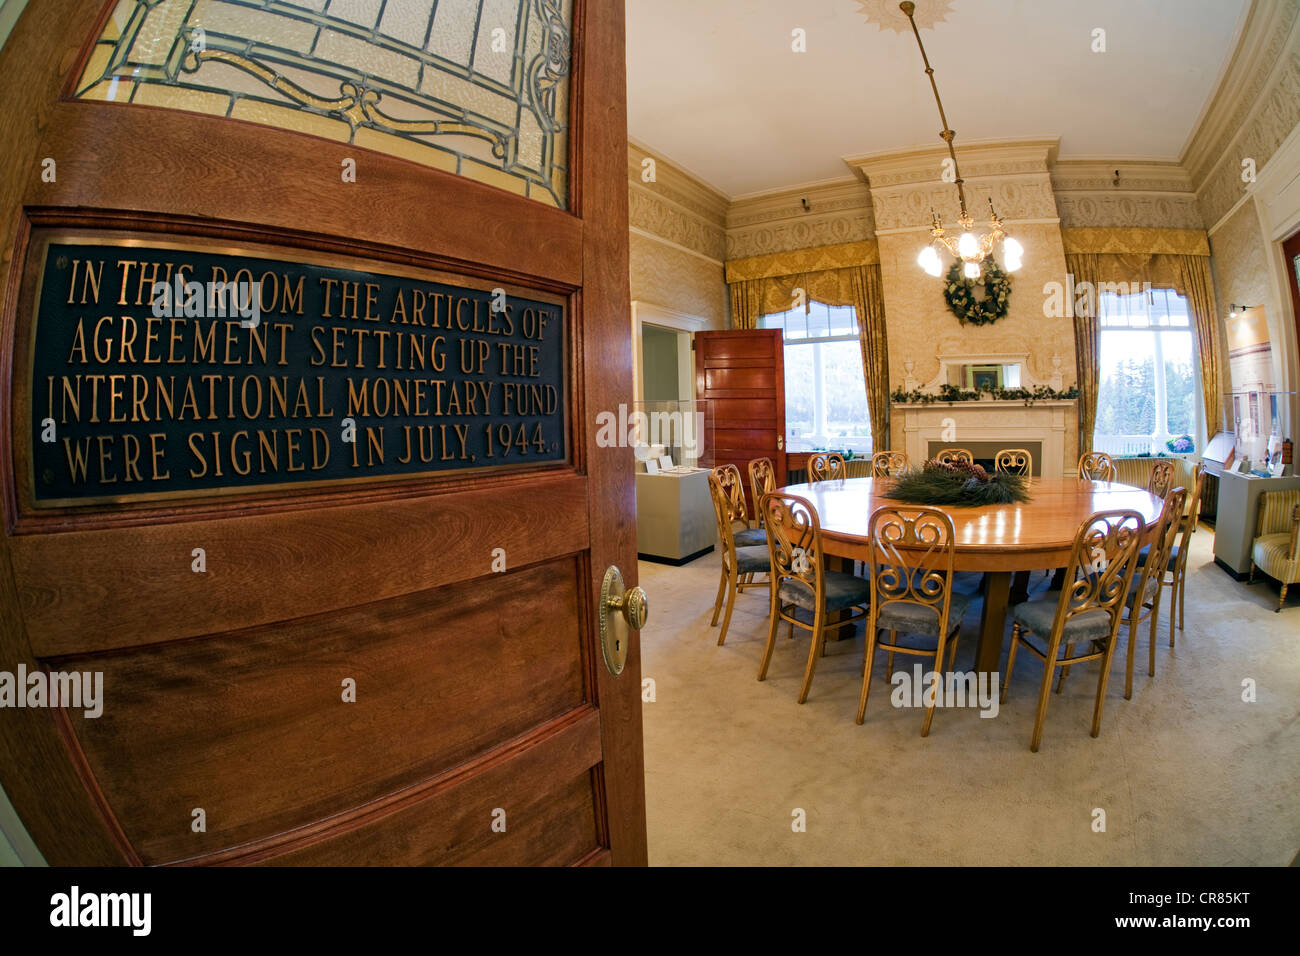 Stock photo united states new england new hampshire white mountain national forest bretton woods luxury hotel mount washington resort